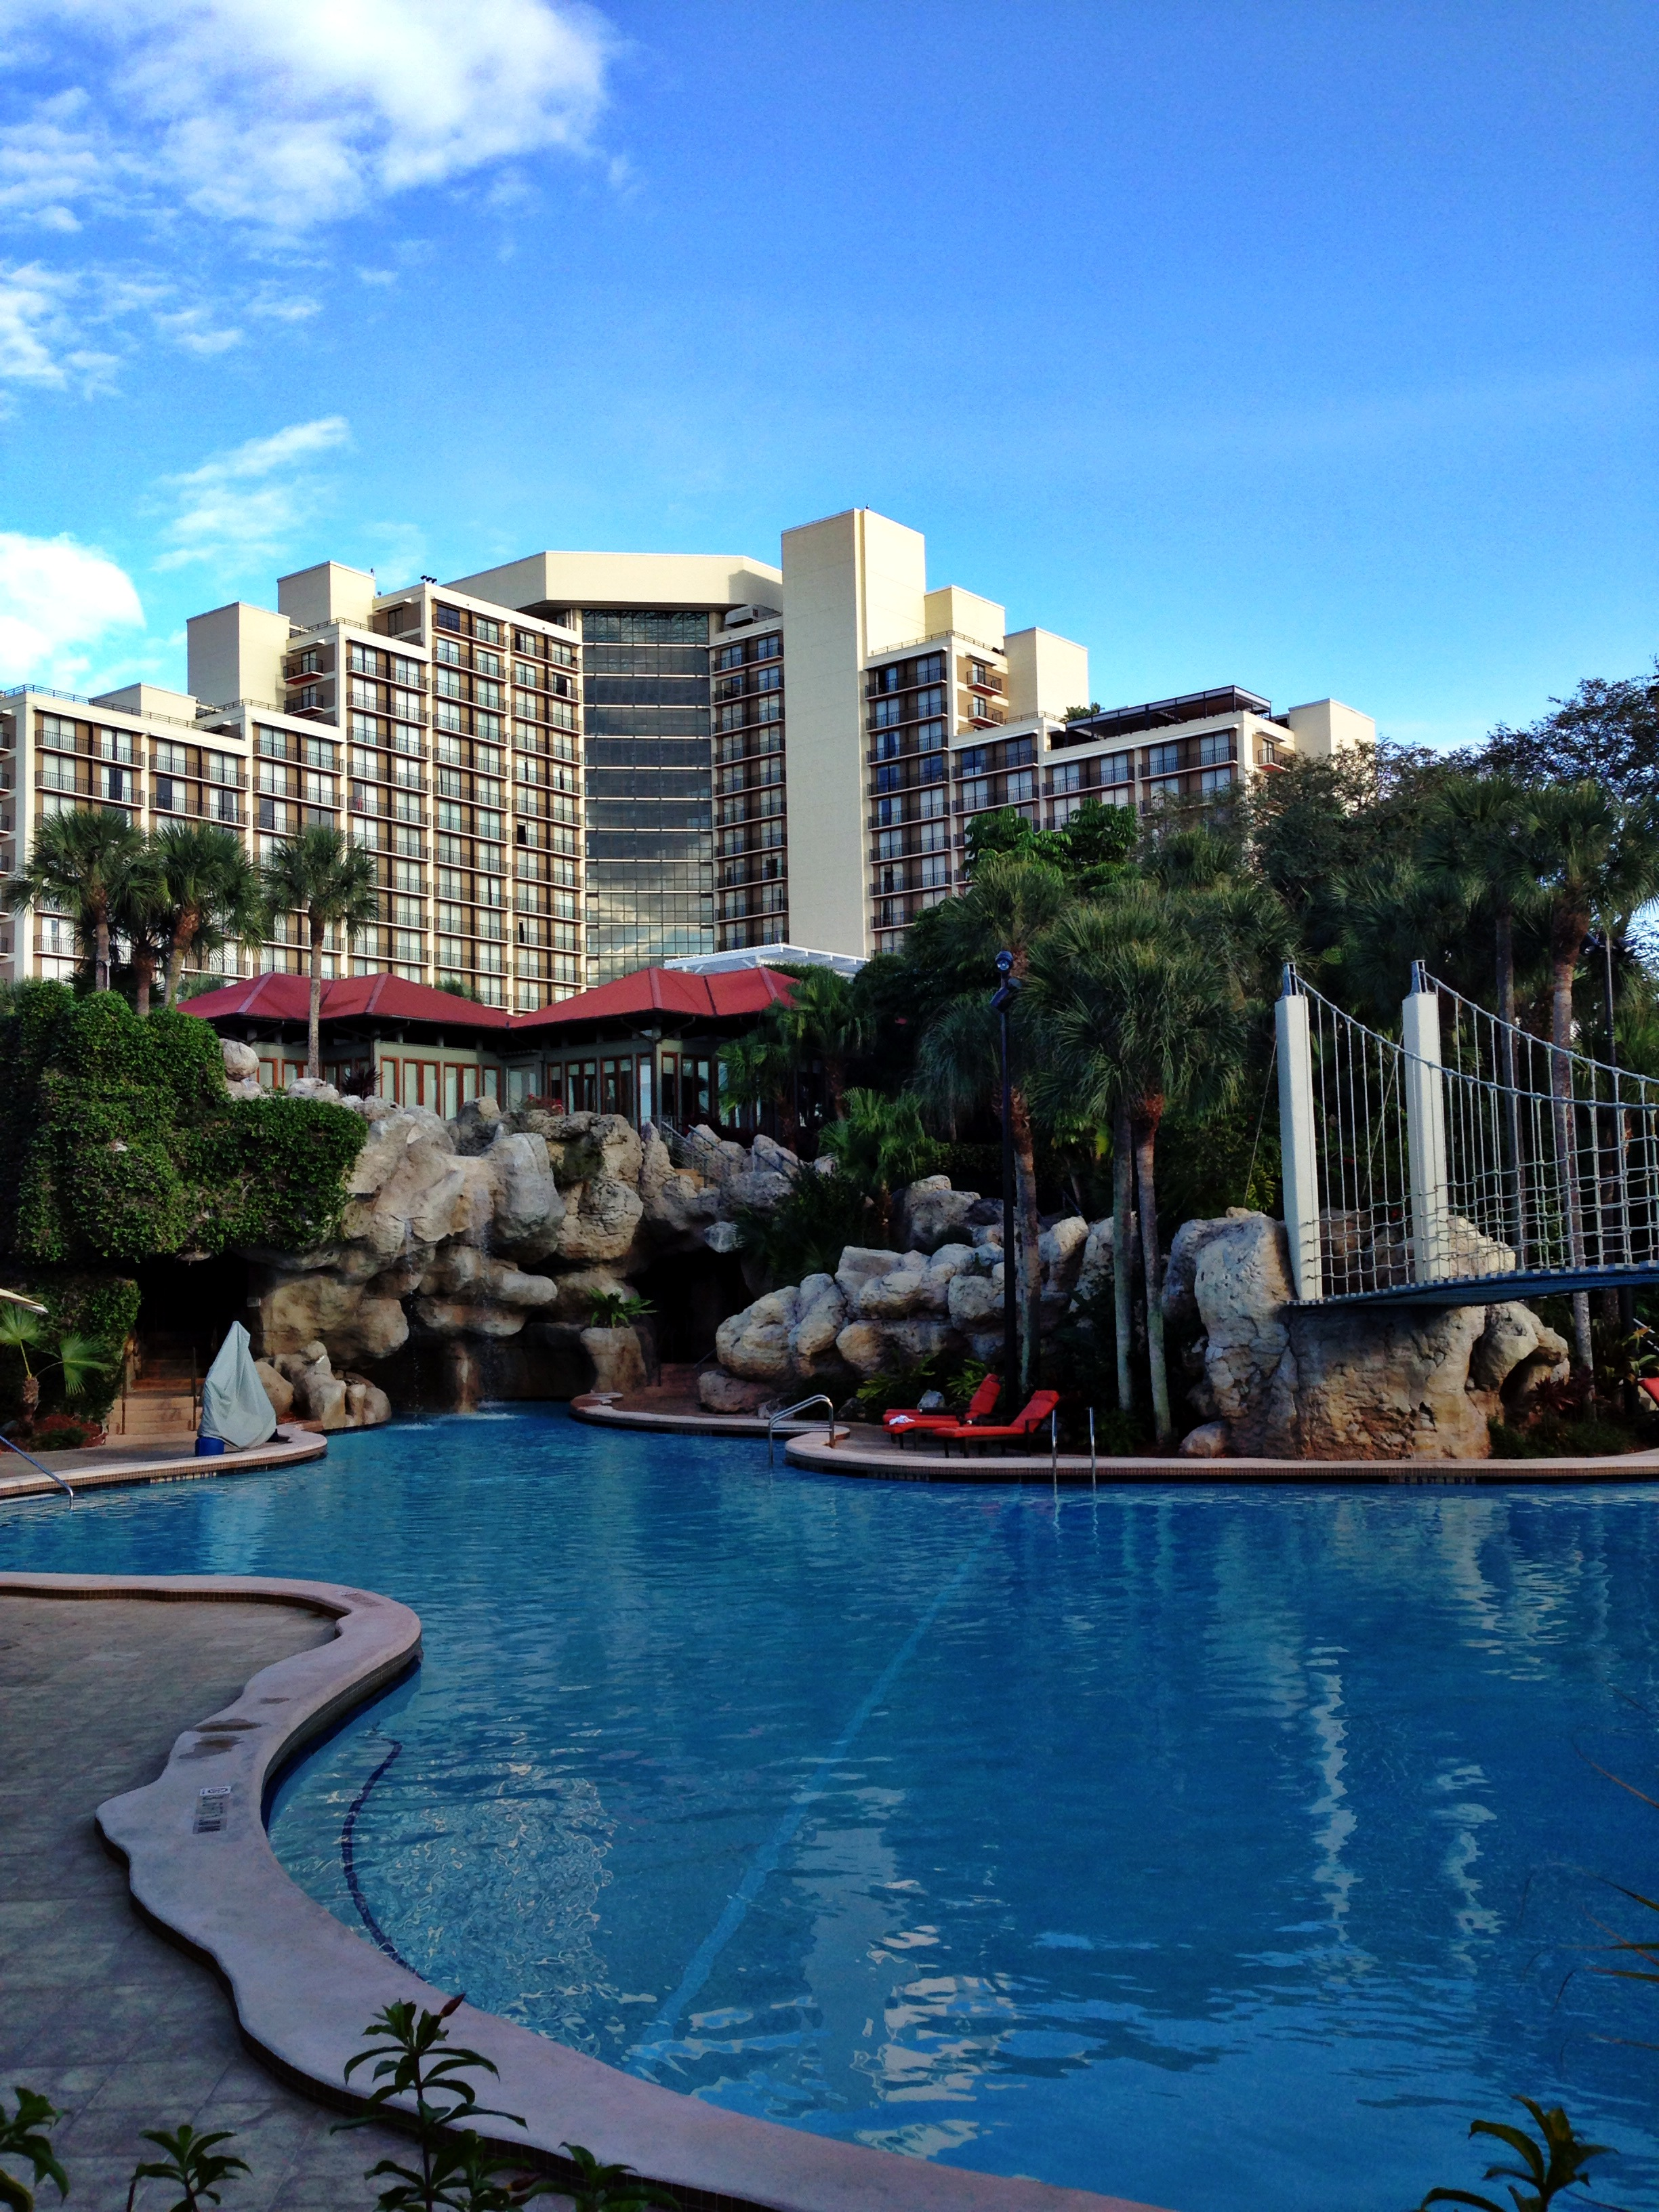 Hyatt Regency Grand Cypress #LastSplashOfSummer Hyatt Regency Grand Cypress